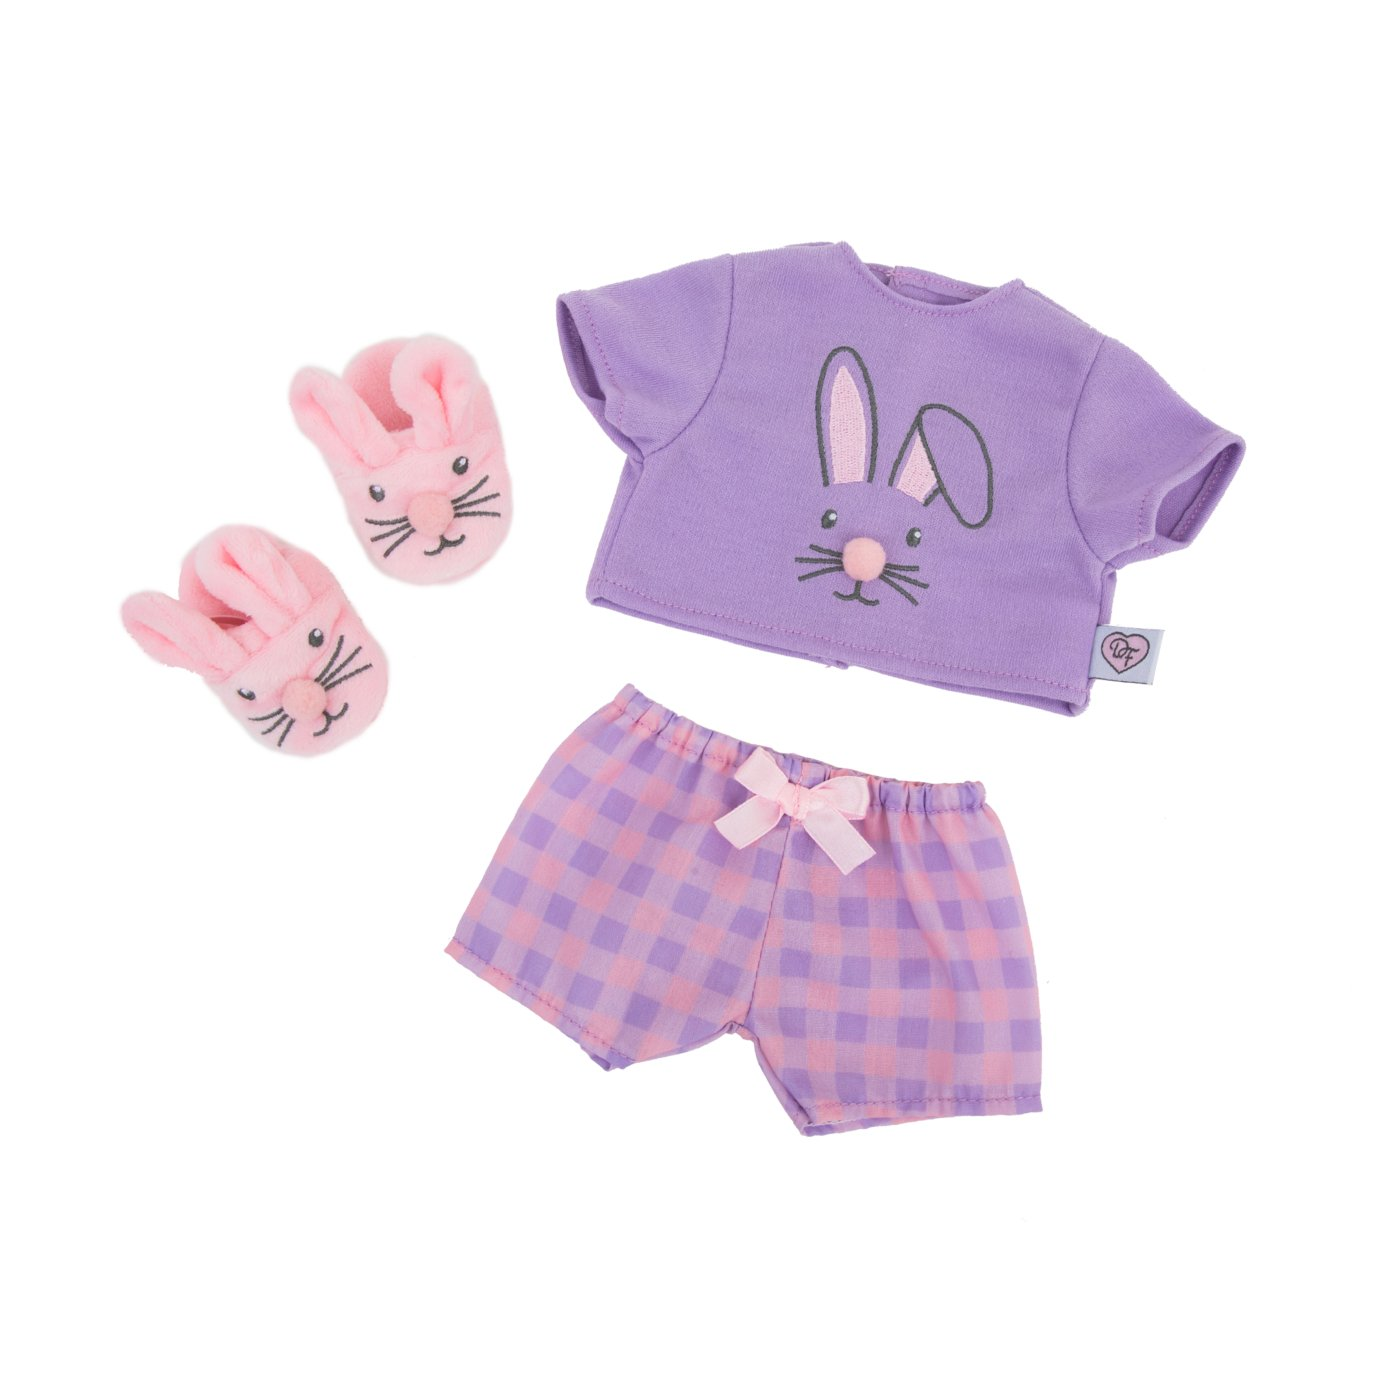 Chad Valley Designafriend Bunny Pyjamas Outfit